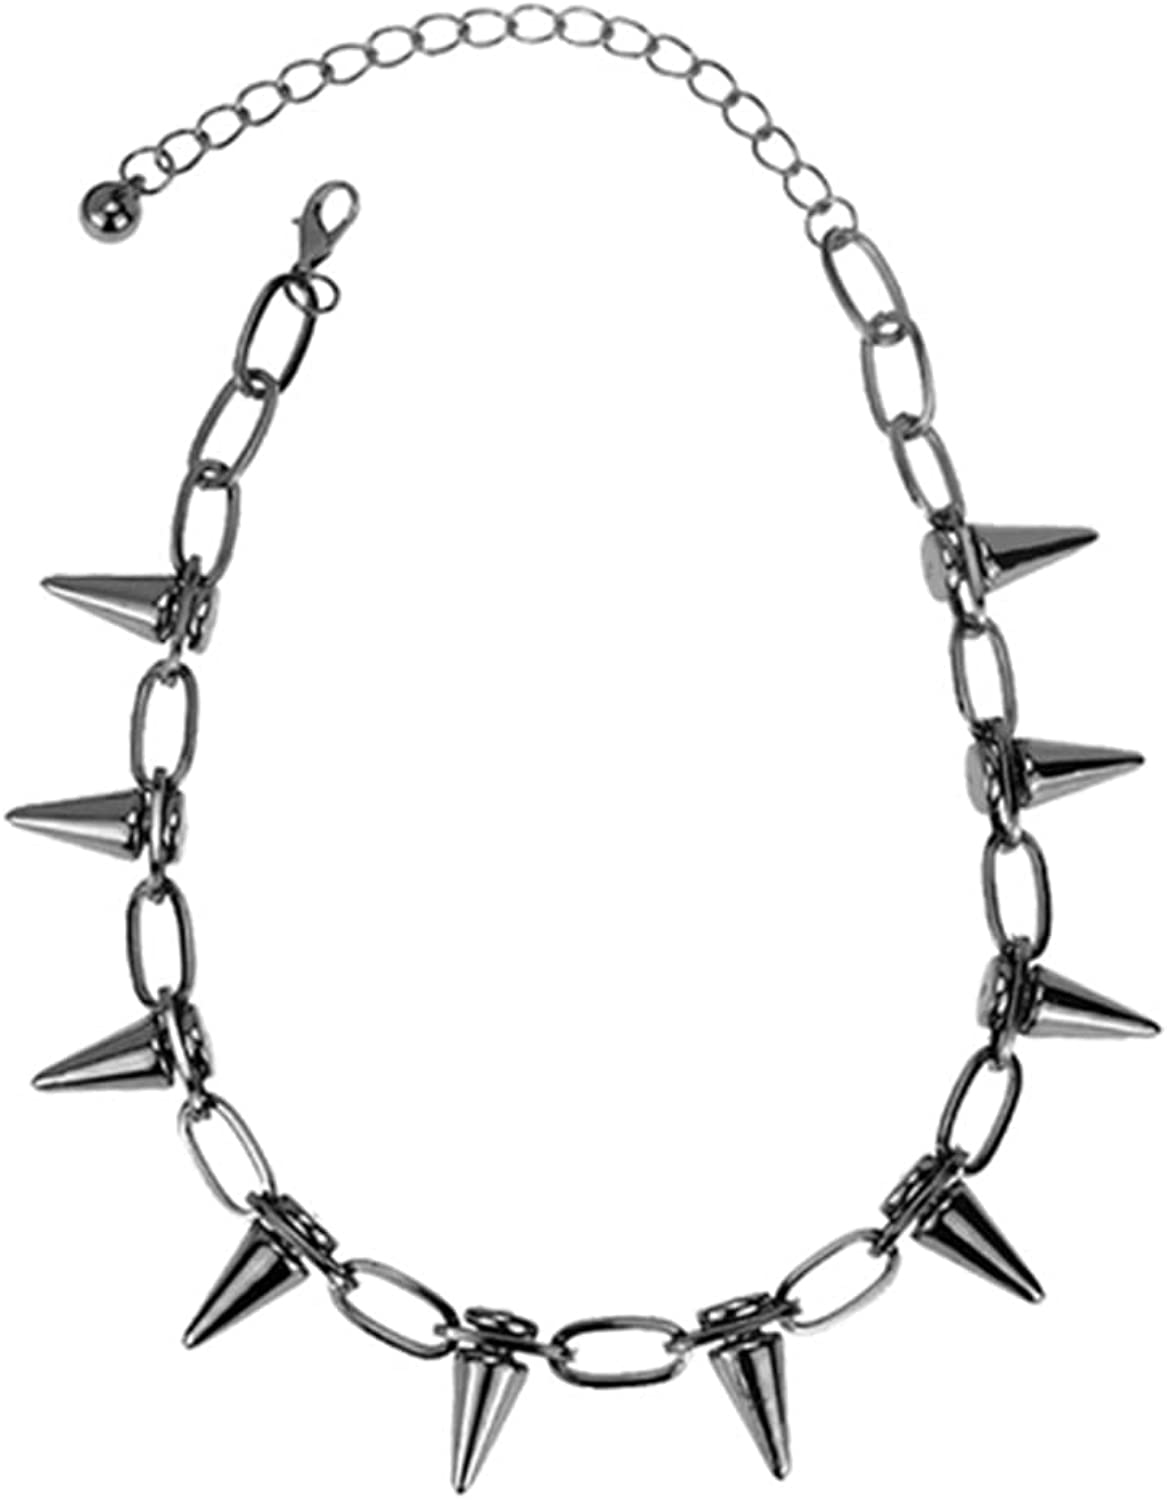 Pingyongchang Vintage Necklace Exaggerated Punk Rivet Necklace Bullet Necklace Collarbone Chain